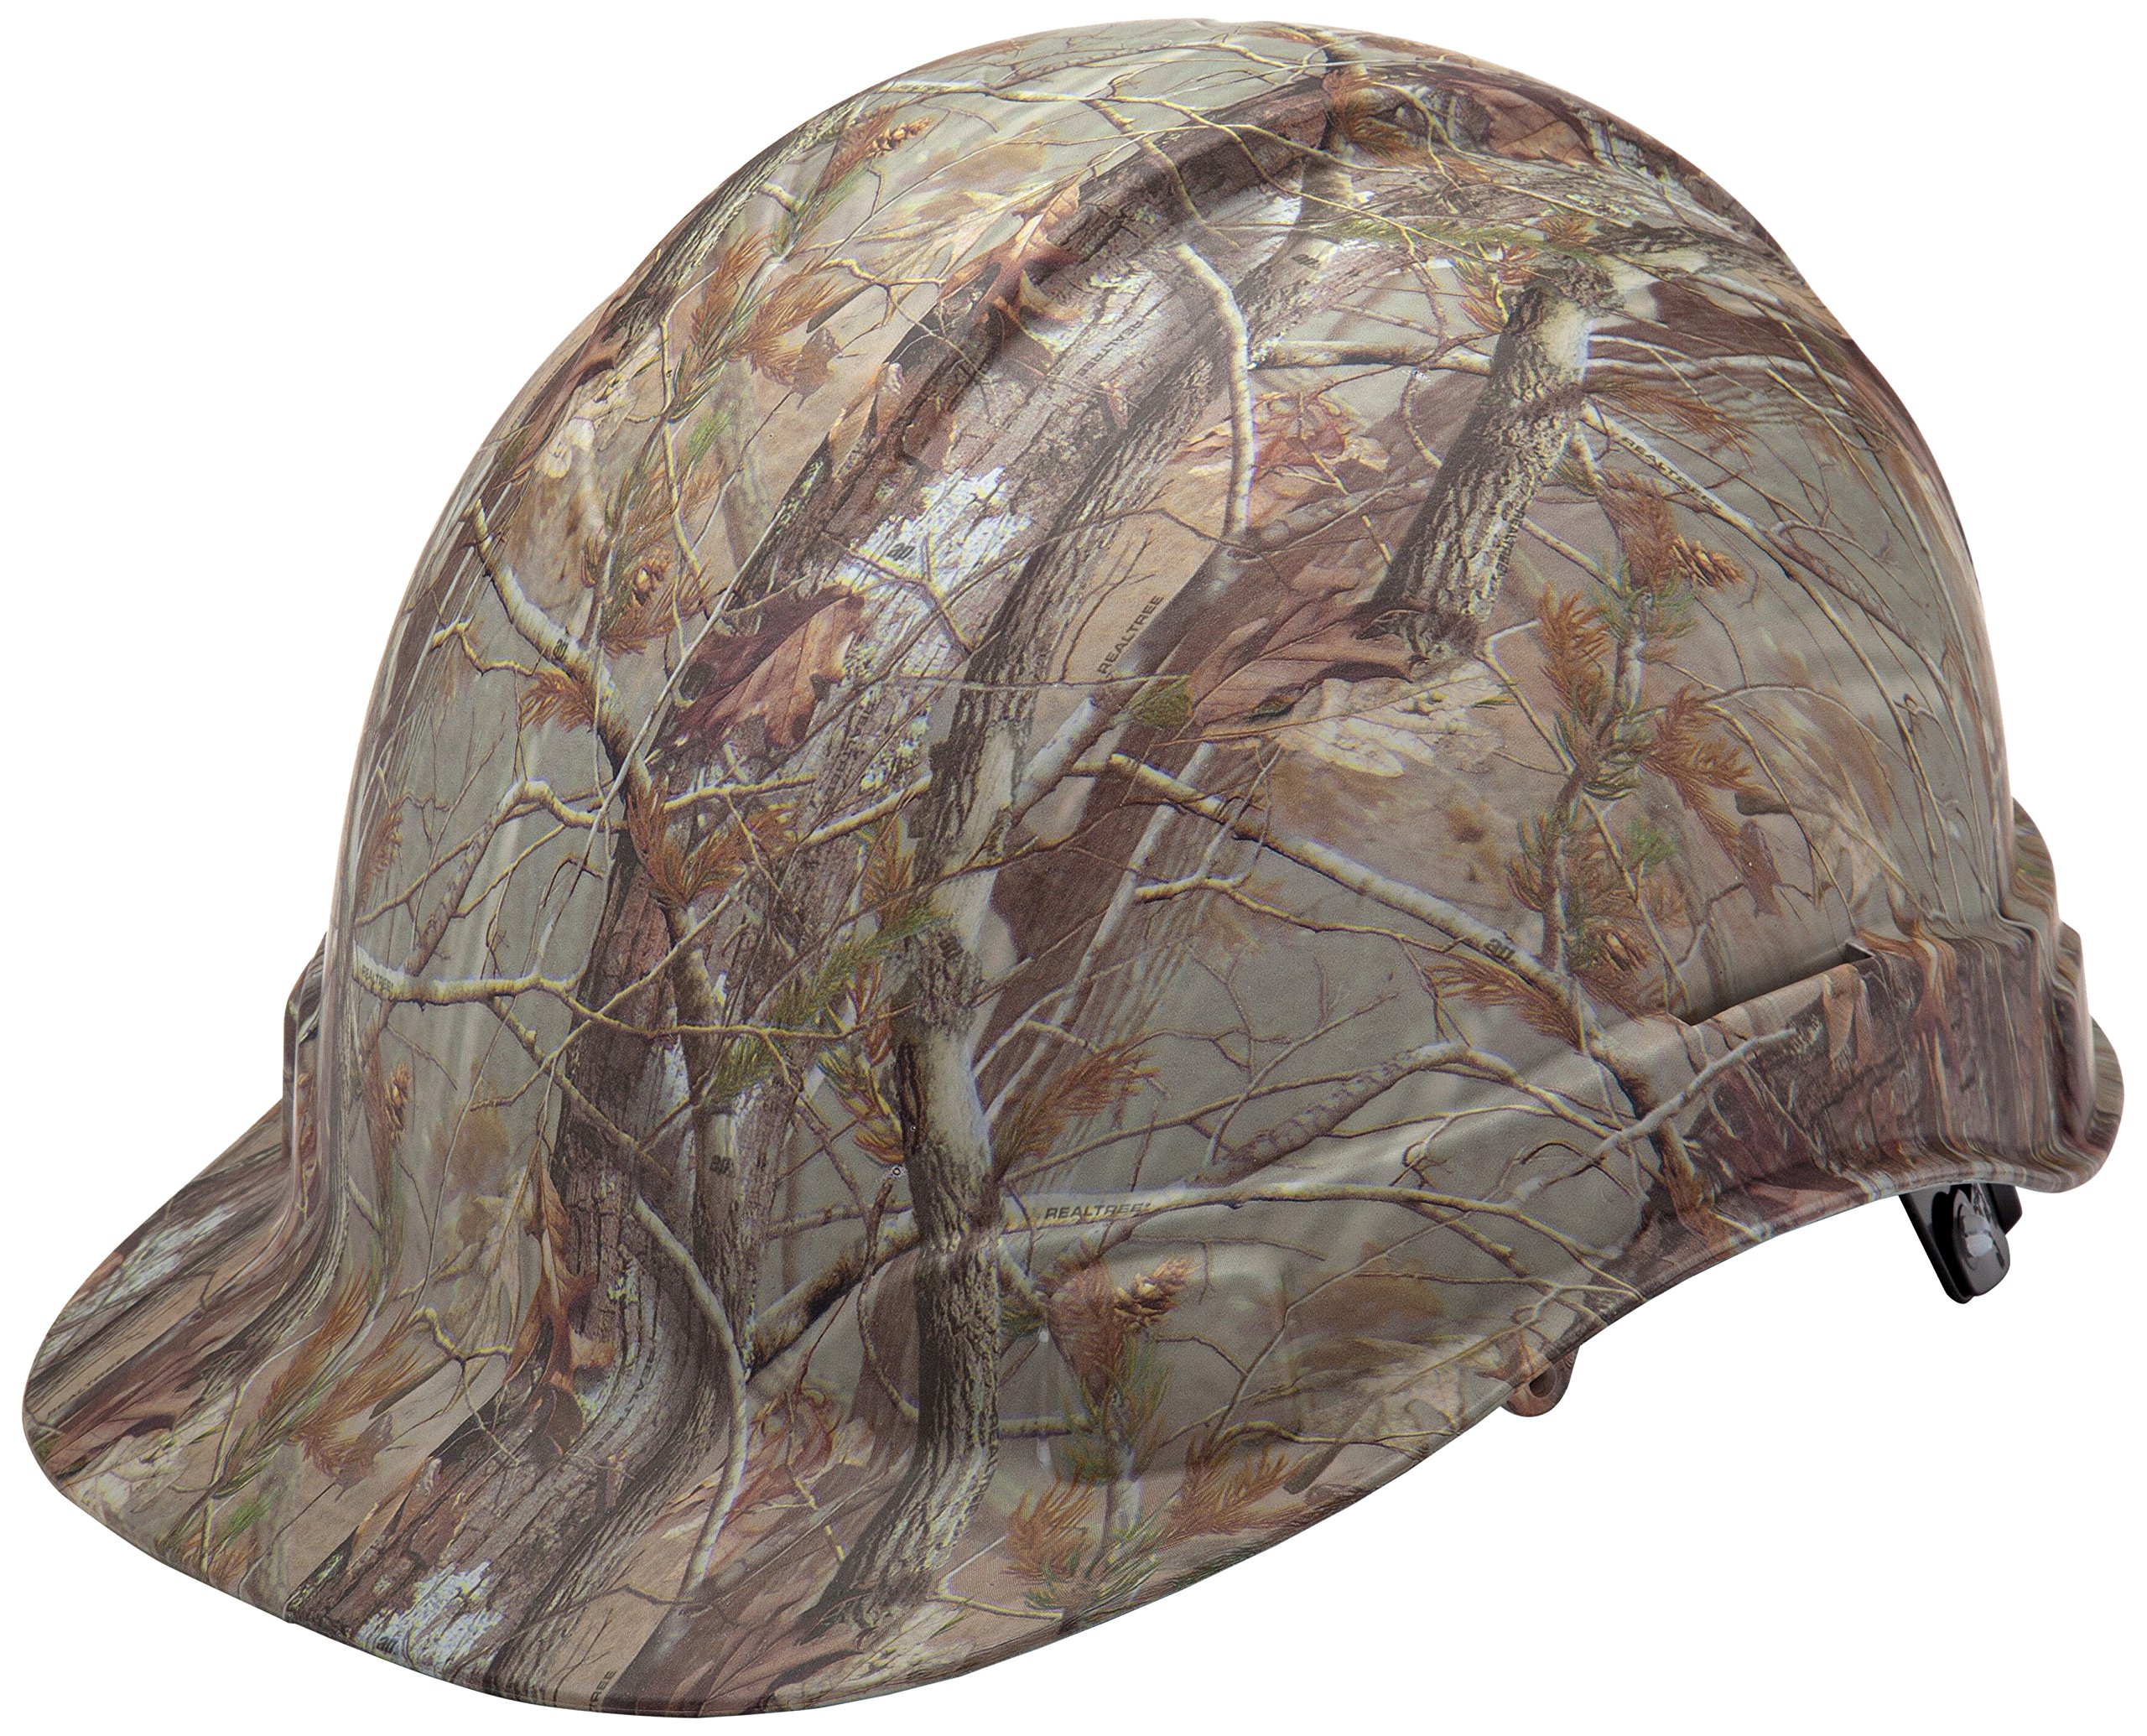 Pyramex Ridgeline Cap Style Hard Hat, 4-Point Ratchet Suspension, Matte Camo Pattern